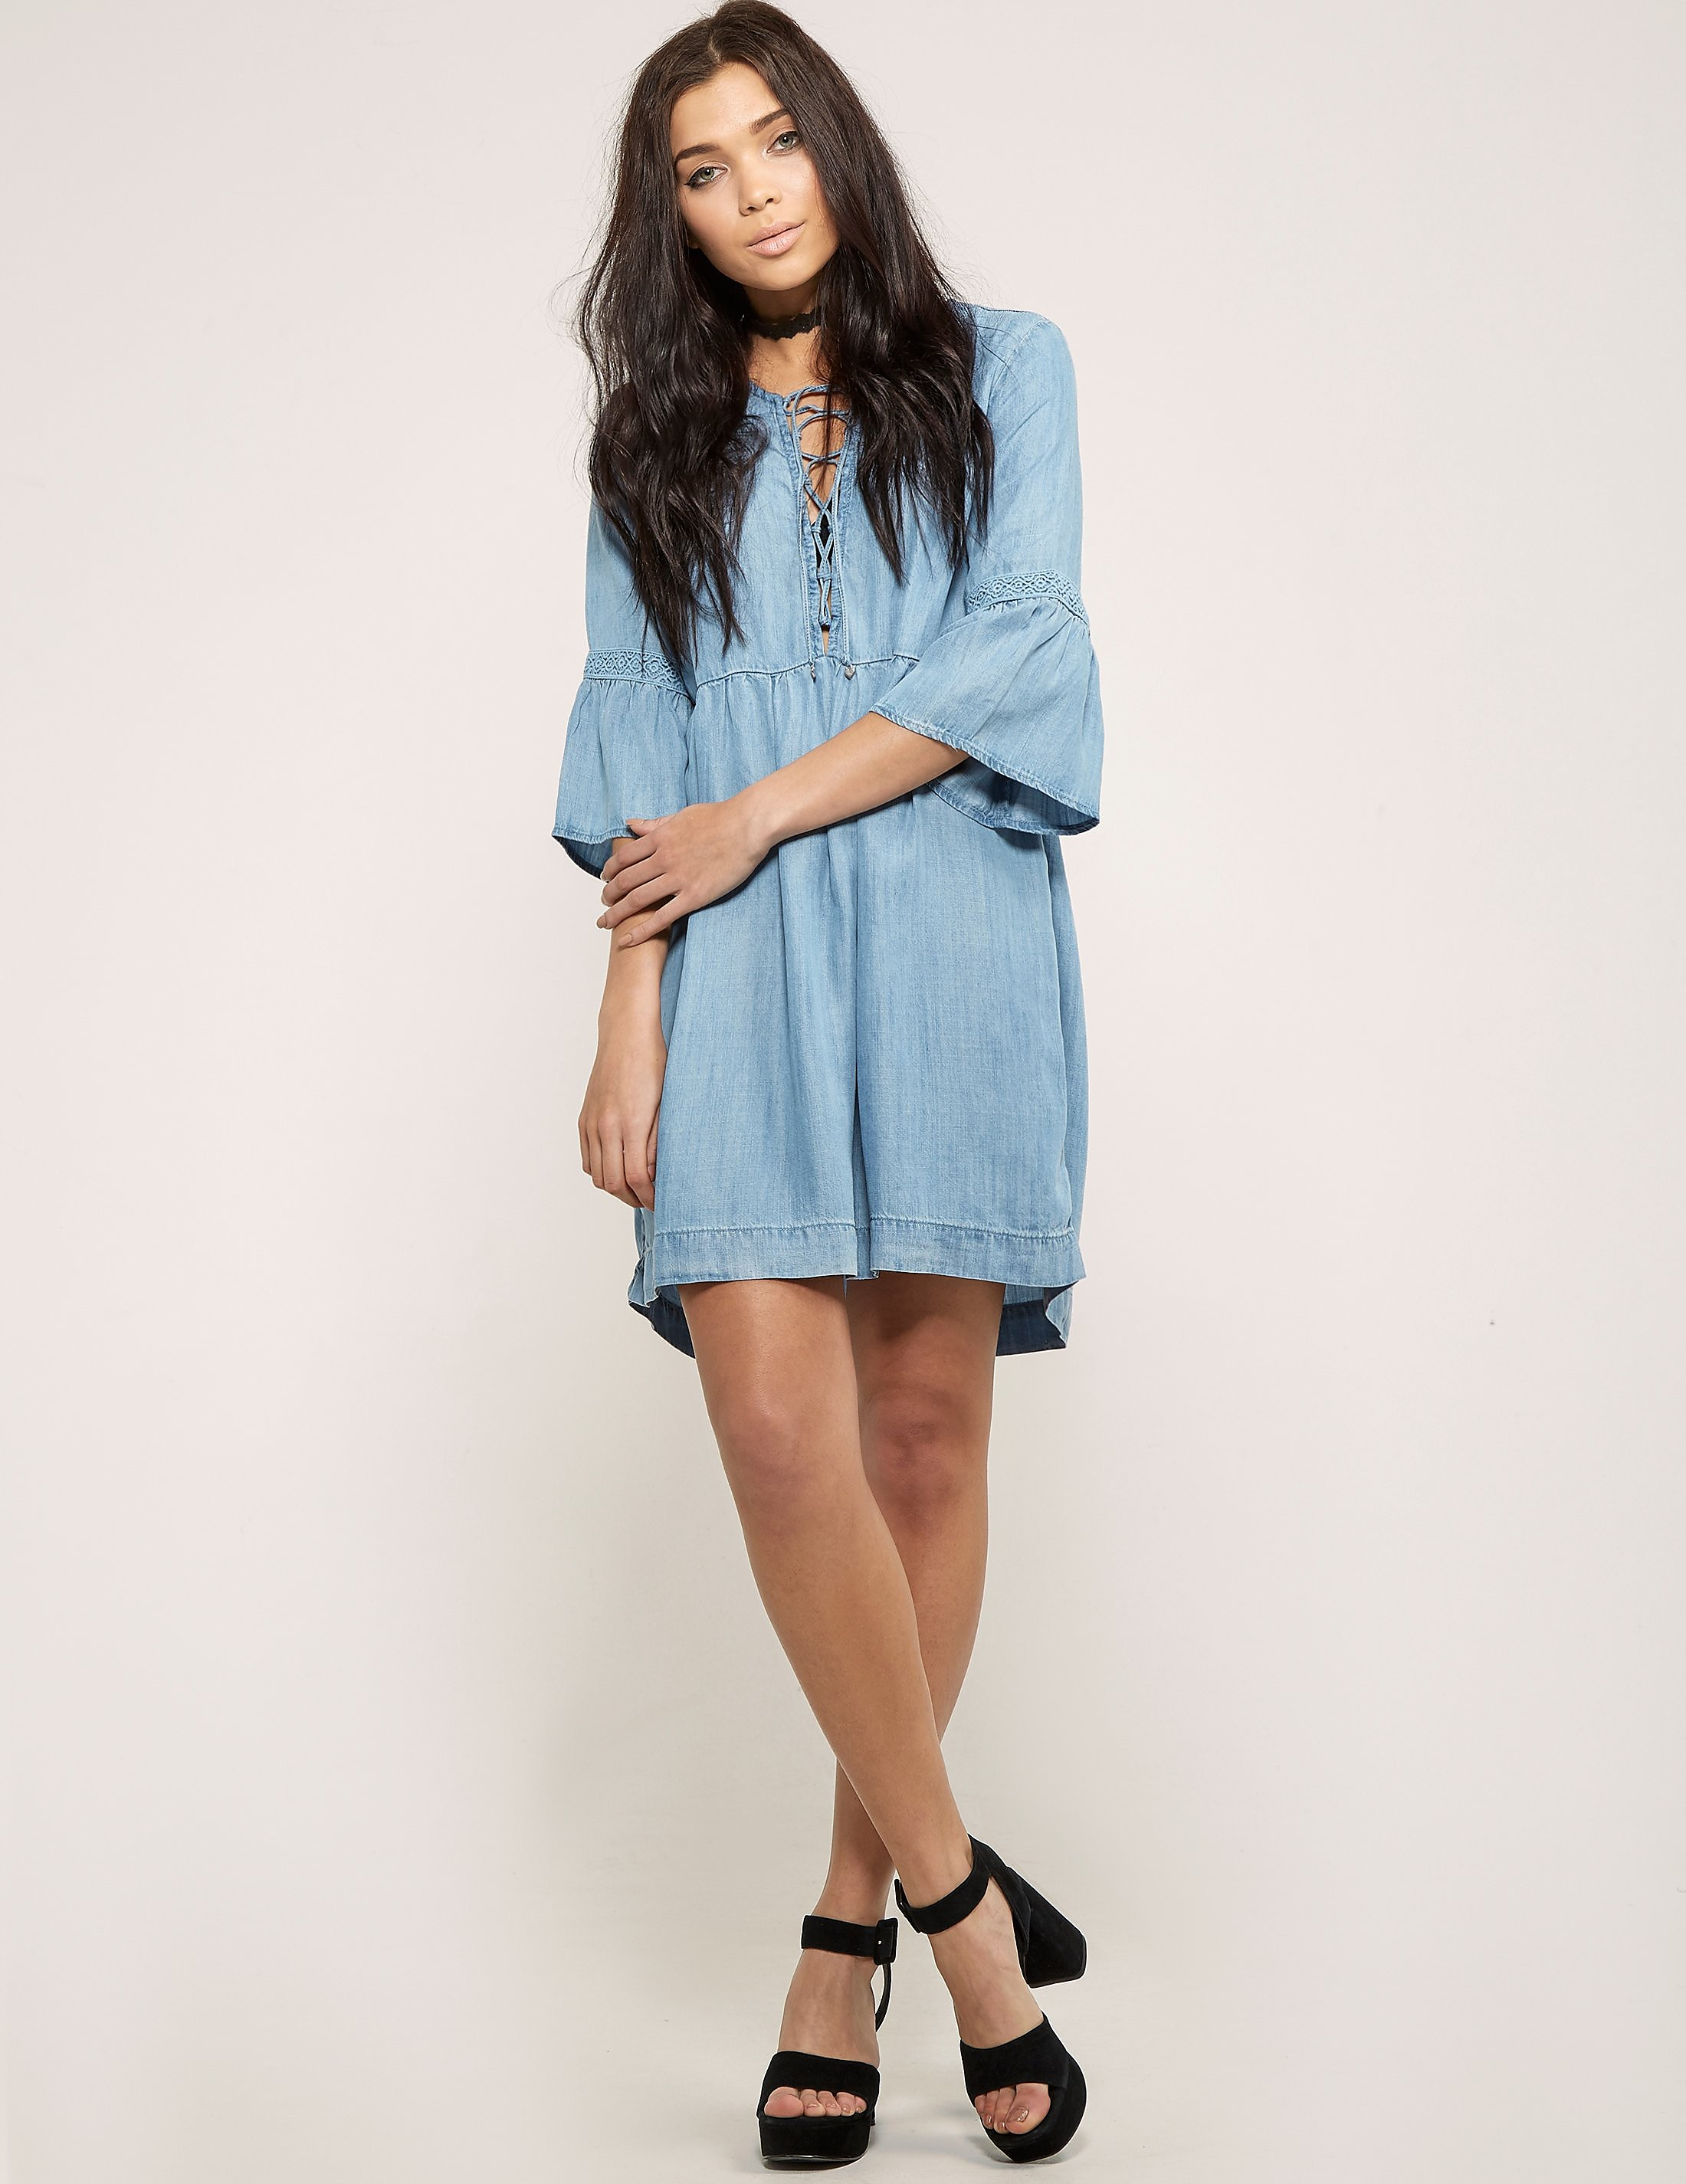 Juicy Couture Chambray Lace Up Dress